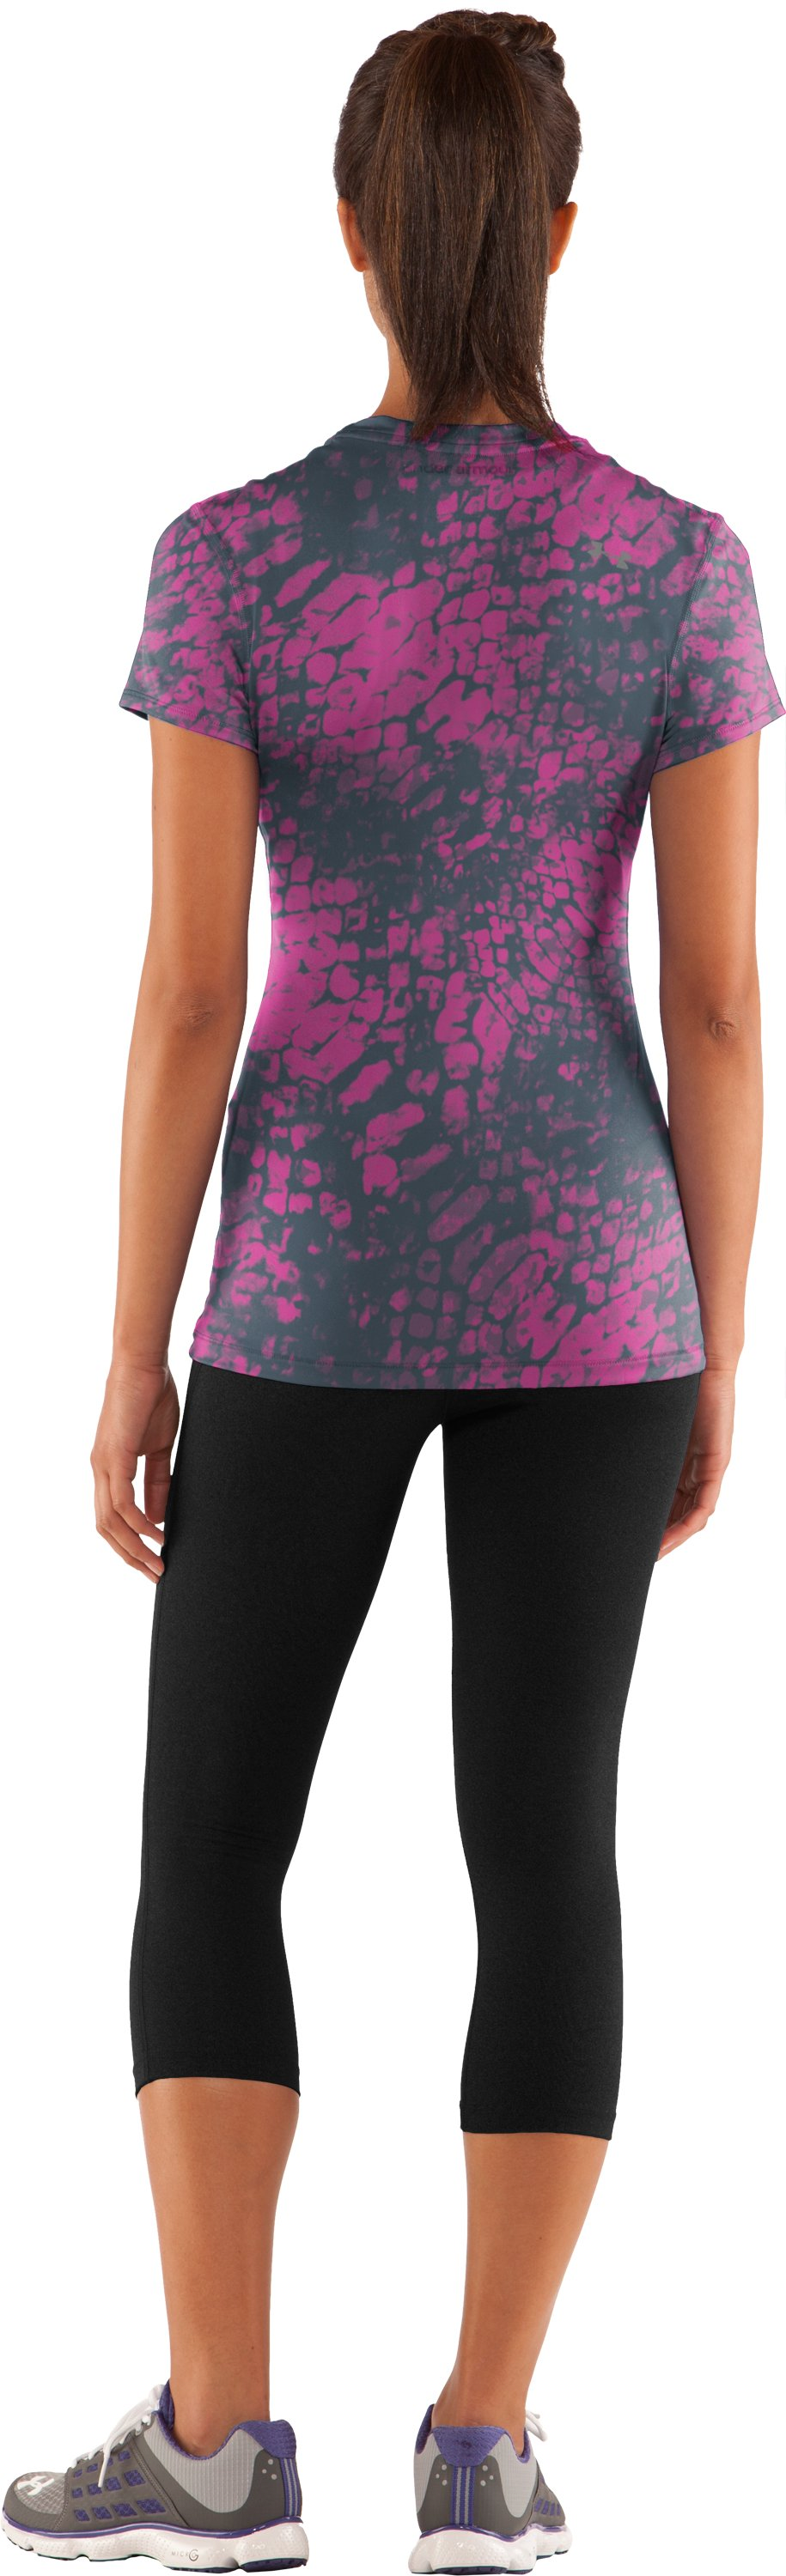 Women's HeatGear® Sonic Printed Short Sleeve, Playful, Back